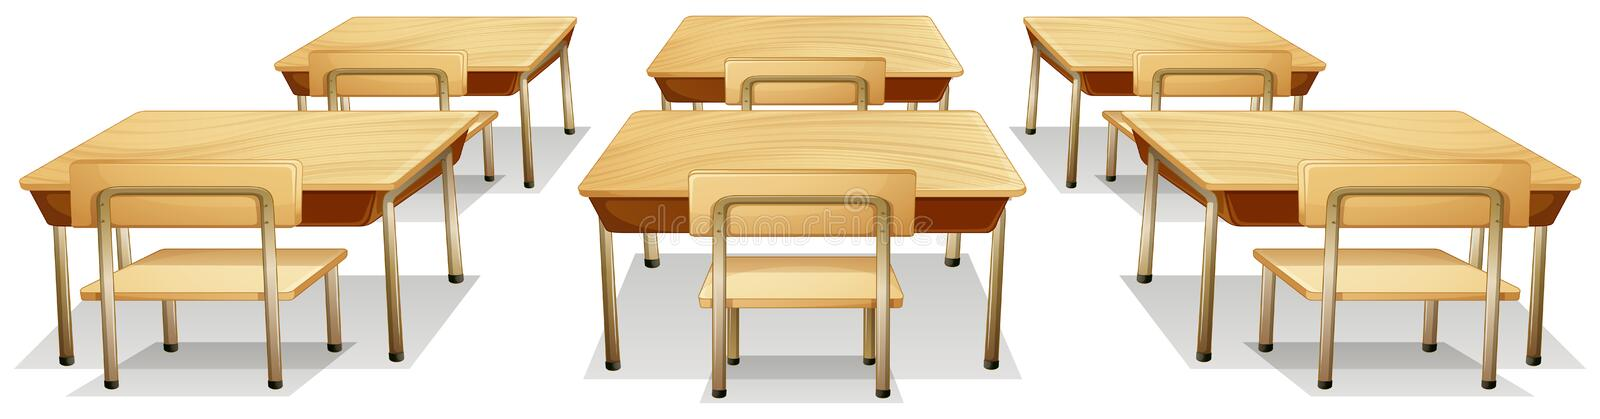 Tables and chairs. Illustration of tables and chairs stock illustration